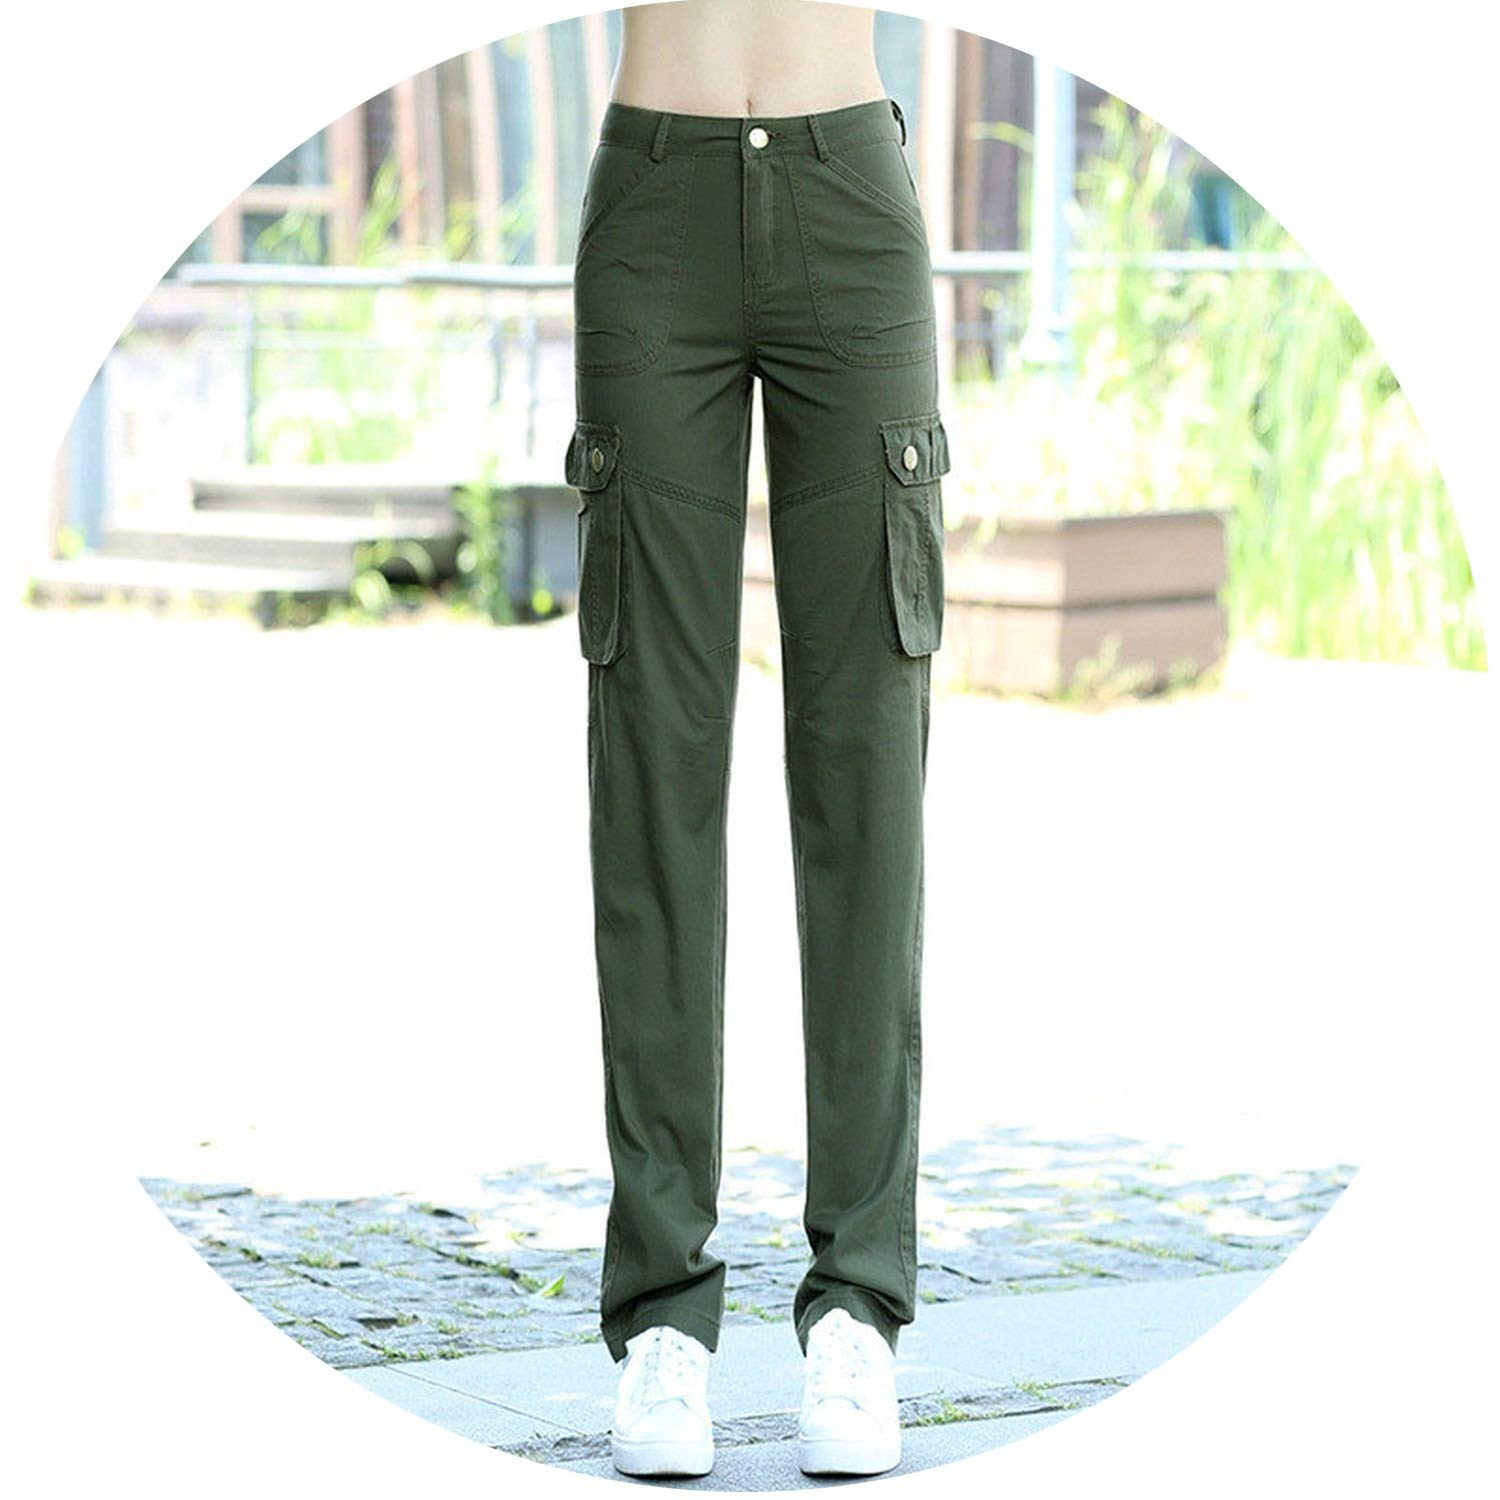 104 army green Pockets Military Pants Women Spring Summer Casual Trousers Women Sweatpants